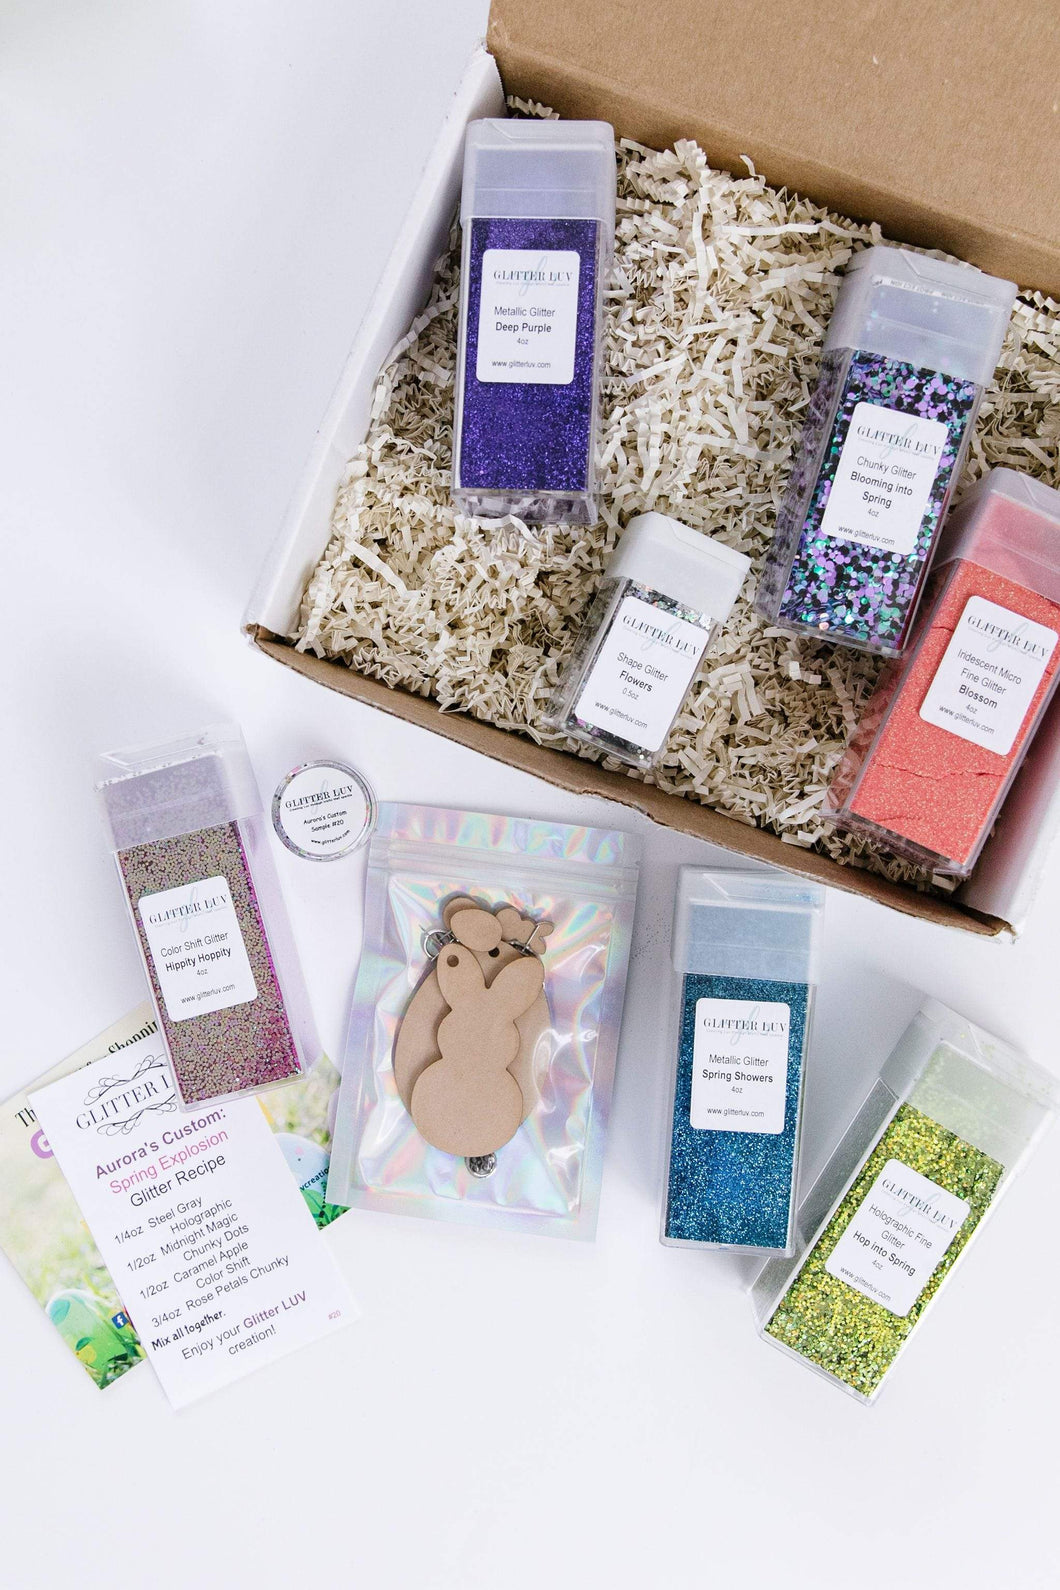 Glitter Luv Subscription Glitter Luv Subscription Box 2021